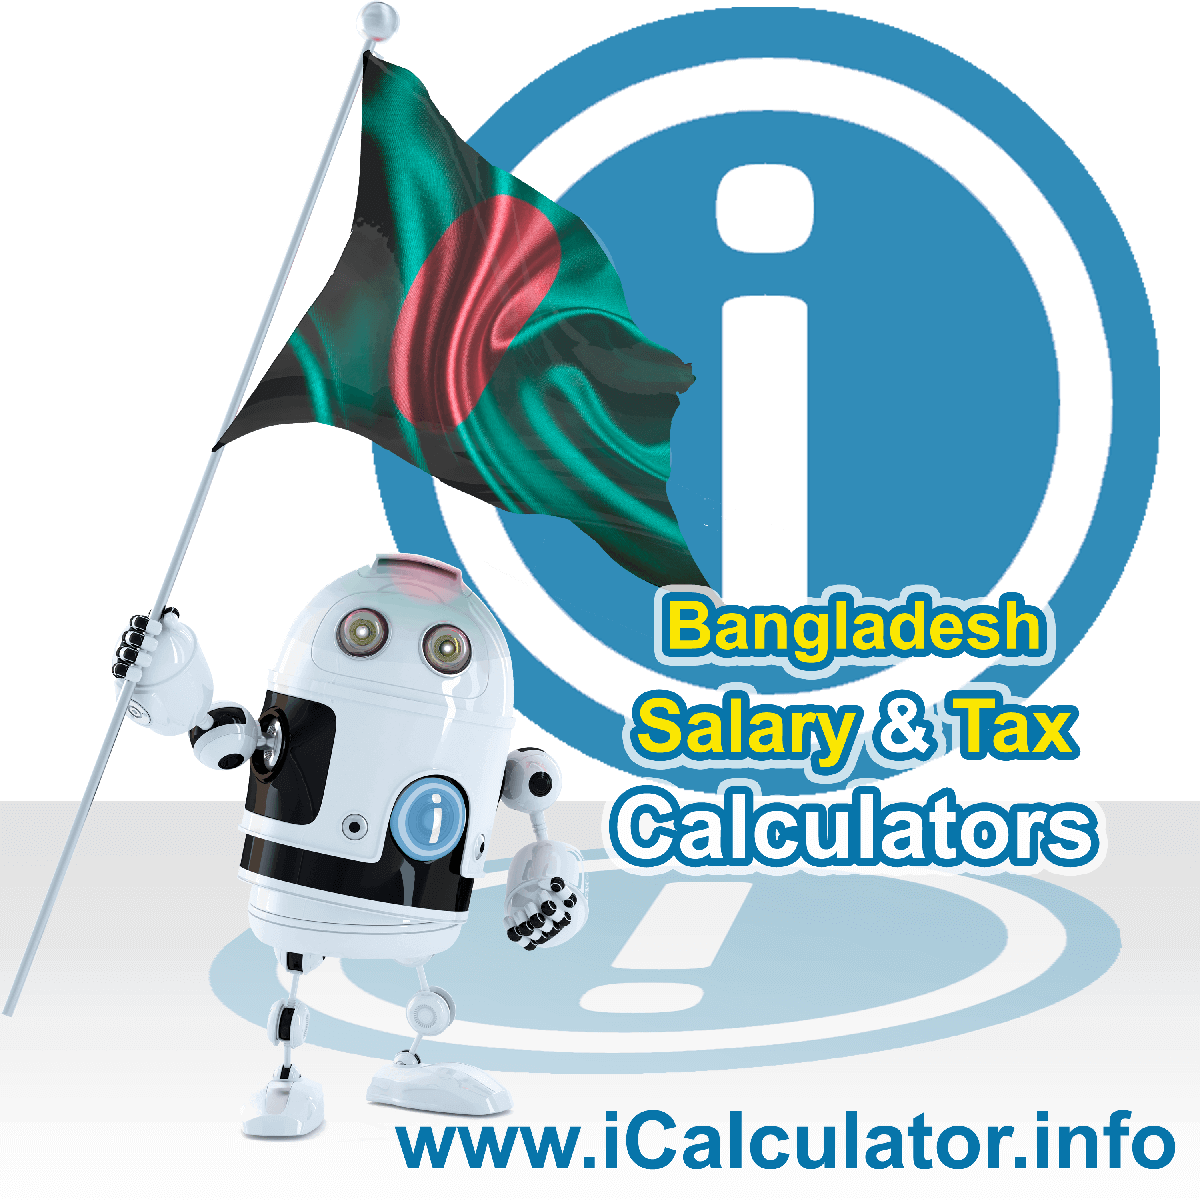 Bangladesh Wage Calculator. This image shows the Bangladesh flag and information relating to the tax formula for the Bangladesh Tax Calculator